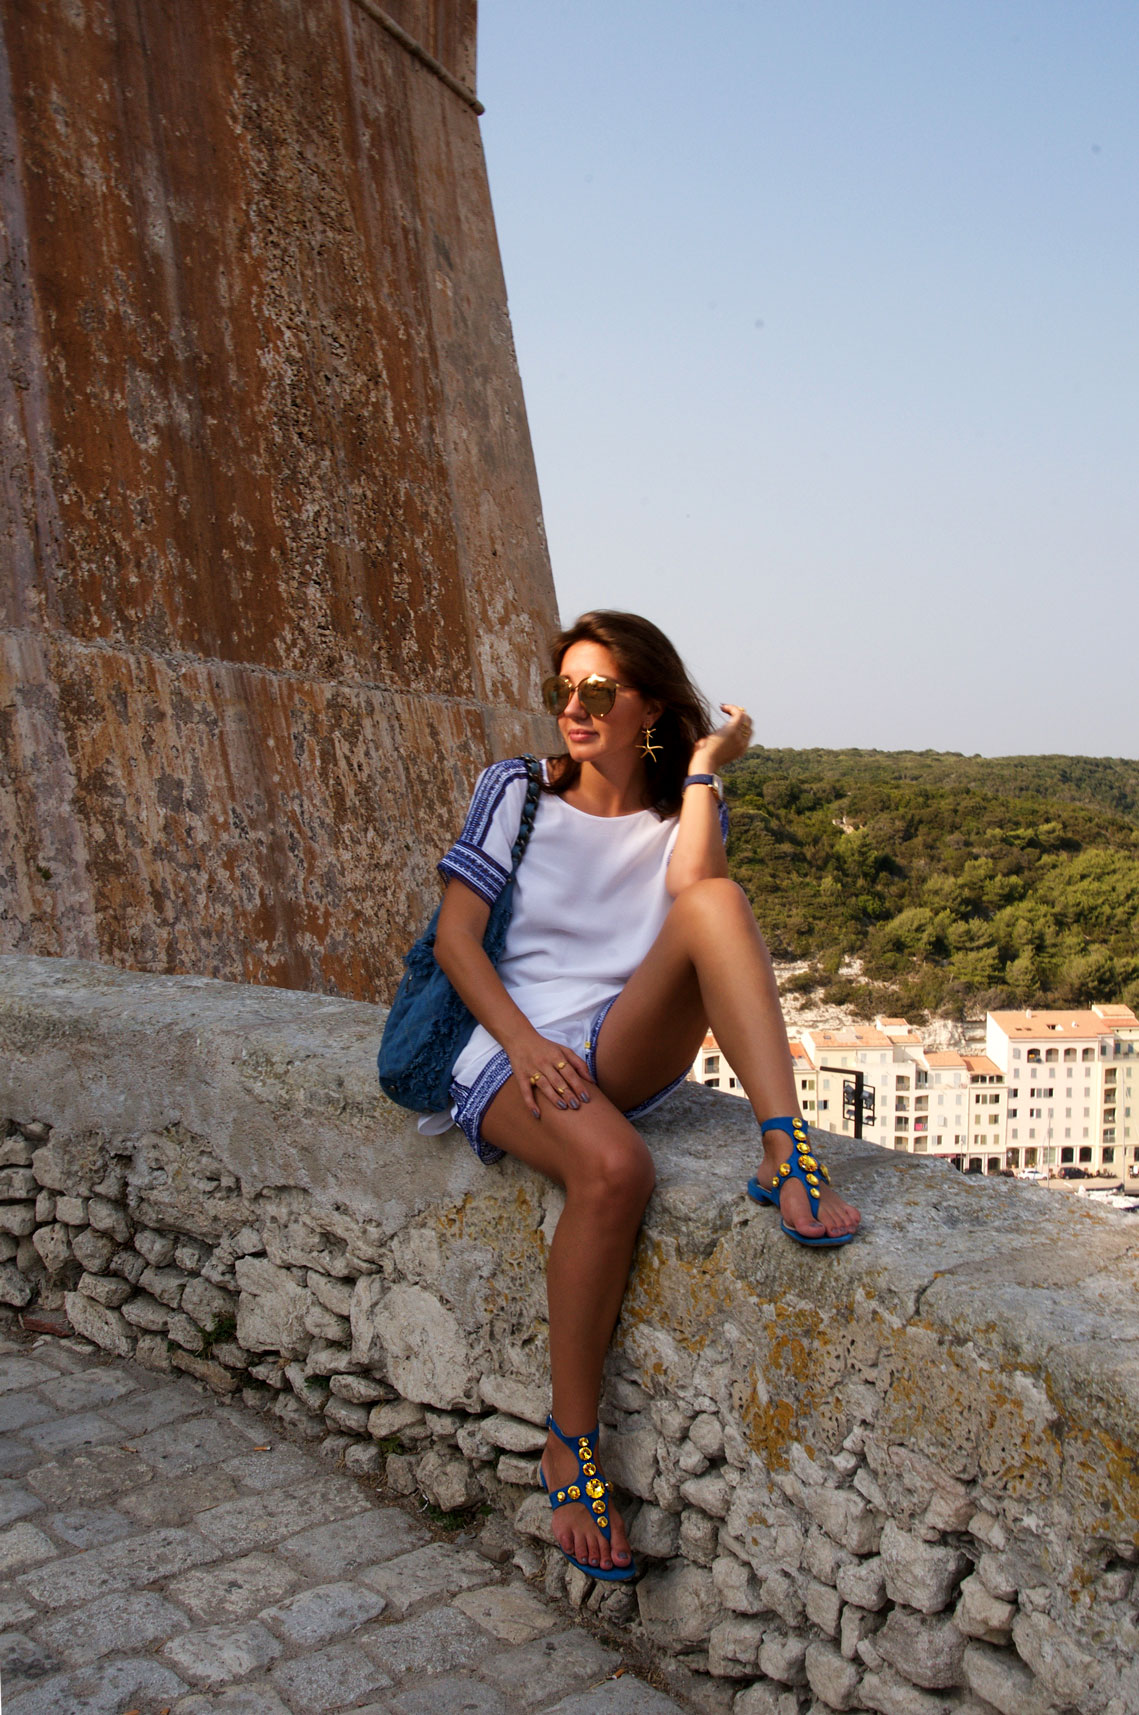 7 More Minutes. Lifestyle, travel and fashion blog by Alyona Prykhodko. Corsican Ice Cream. Travel. Corsica, France. Summer 2015. www.7moreminutes.com